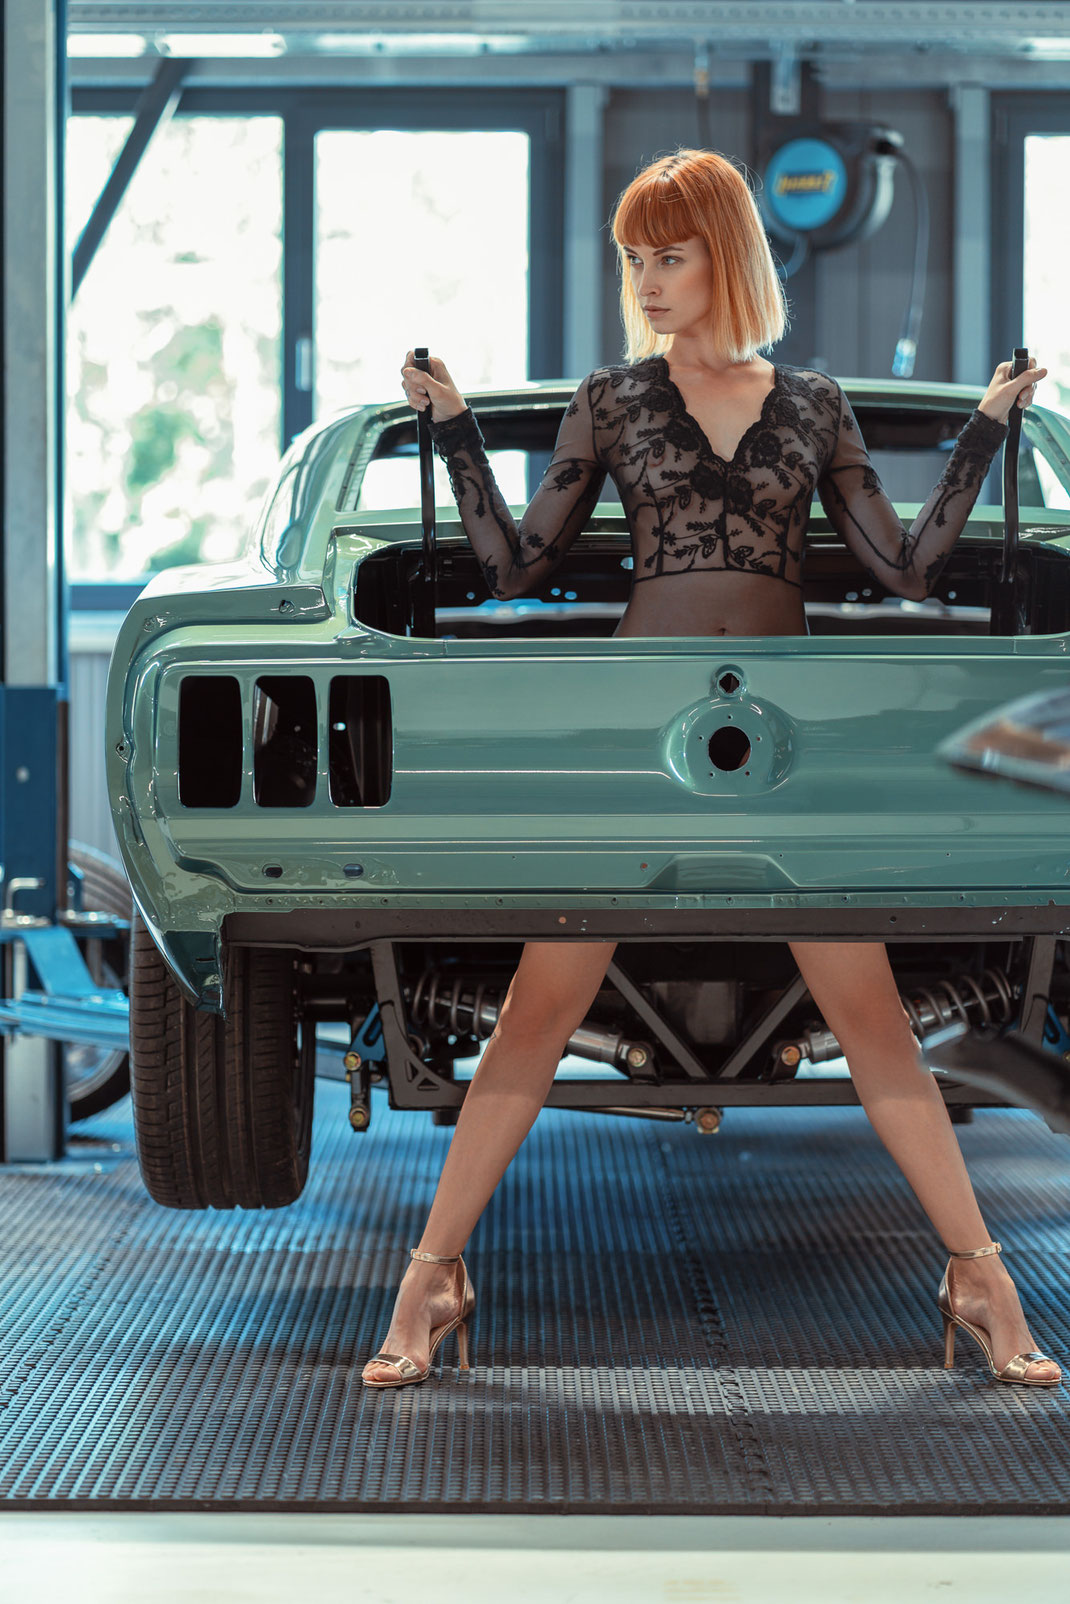 Ambition is a dream with a V8 engine (Elvis Presley) - Zuzanna - Markus Hertzsch - Ford - Mustang - V8 - Car - Model - Girl - Portrait -  Look - Colorgrading - Mustang - Classiccar - Oldtimer